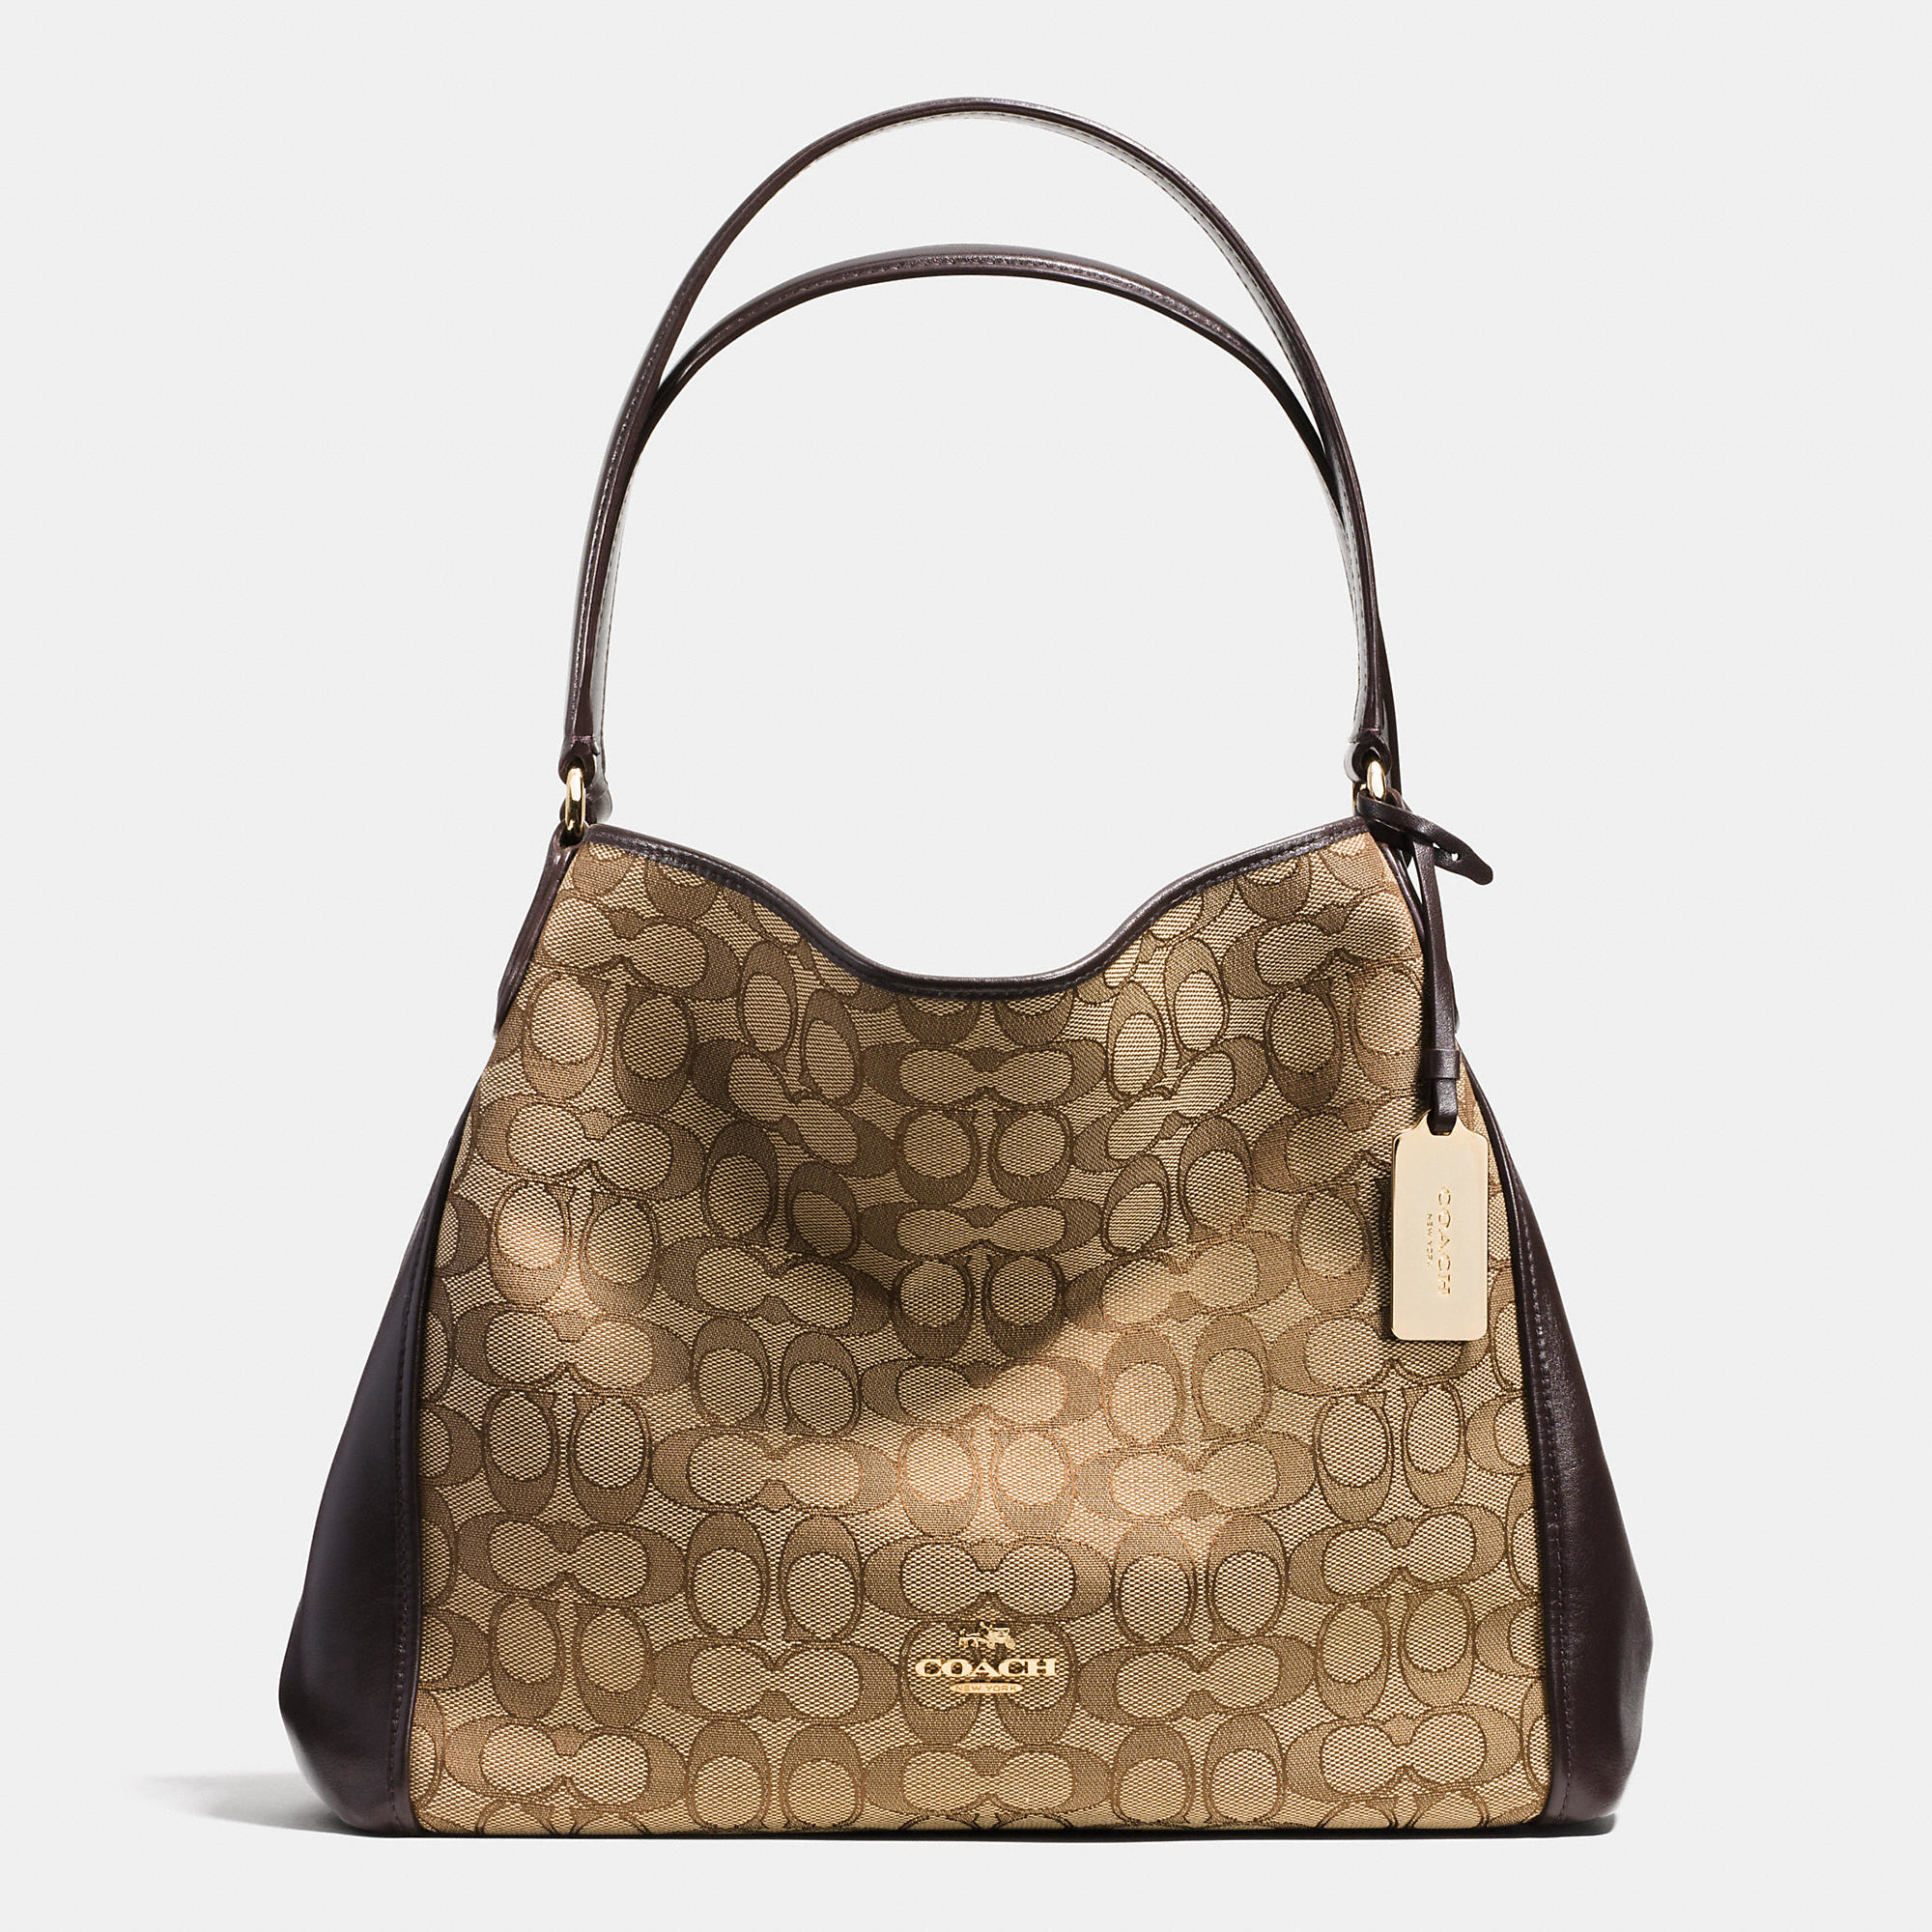 88b2d4fa46e3 Lyst - COACH Edie Shoulder Bag 31 In Signature Jacquard